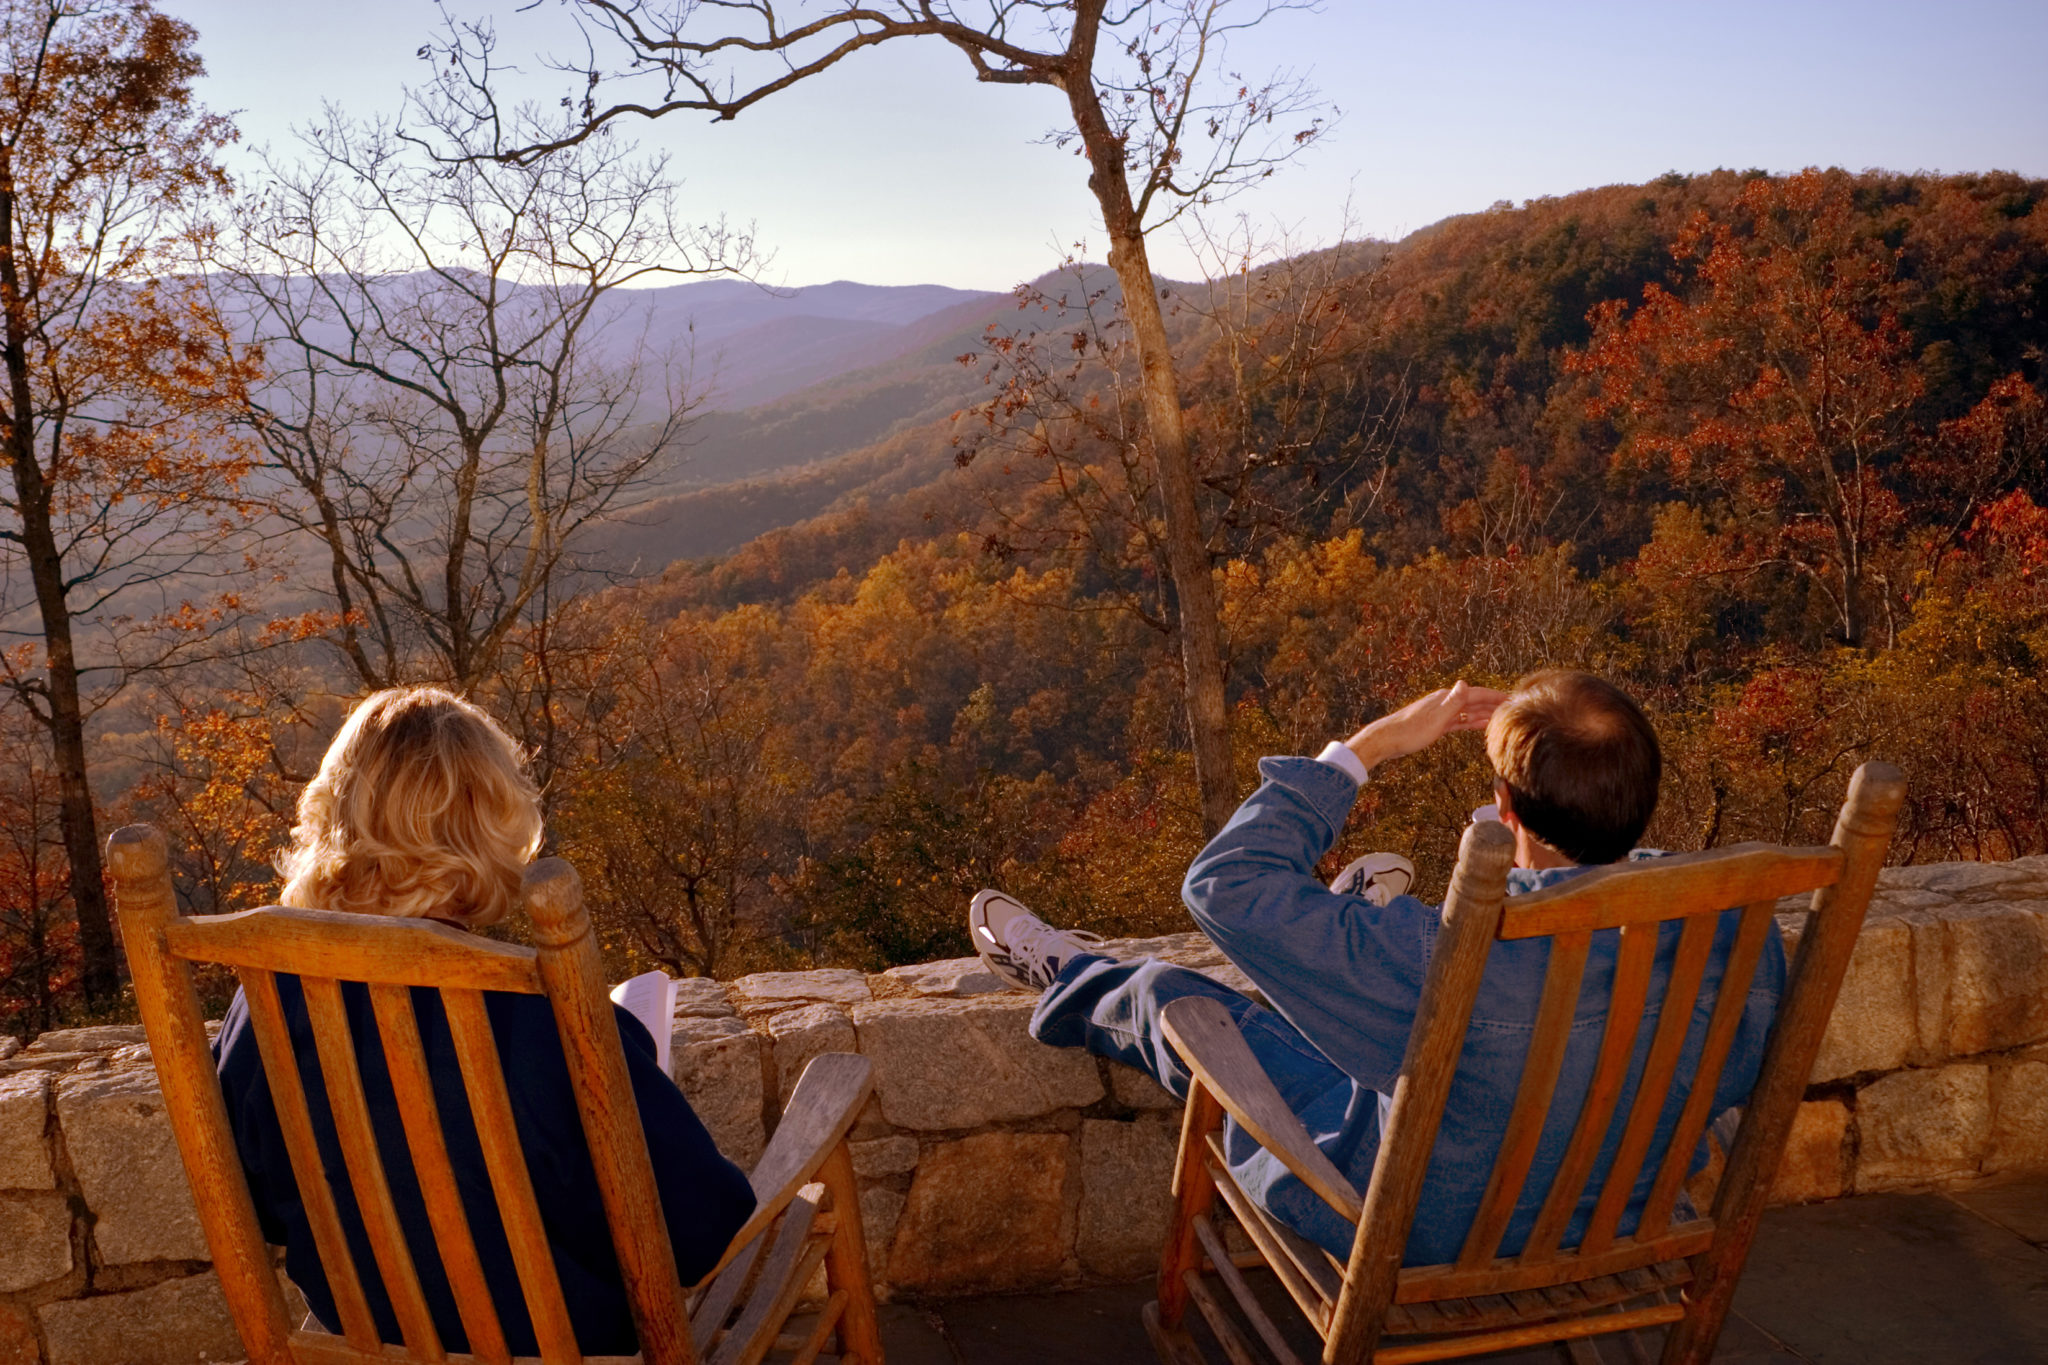 A couple on the porch of a lodge in Amicalola falls